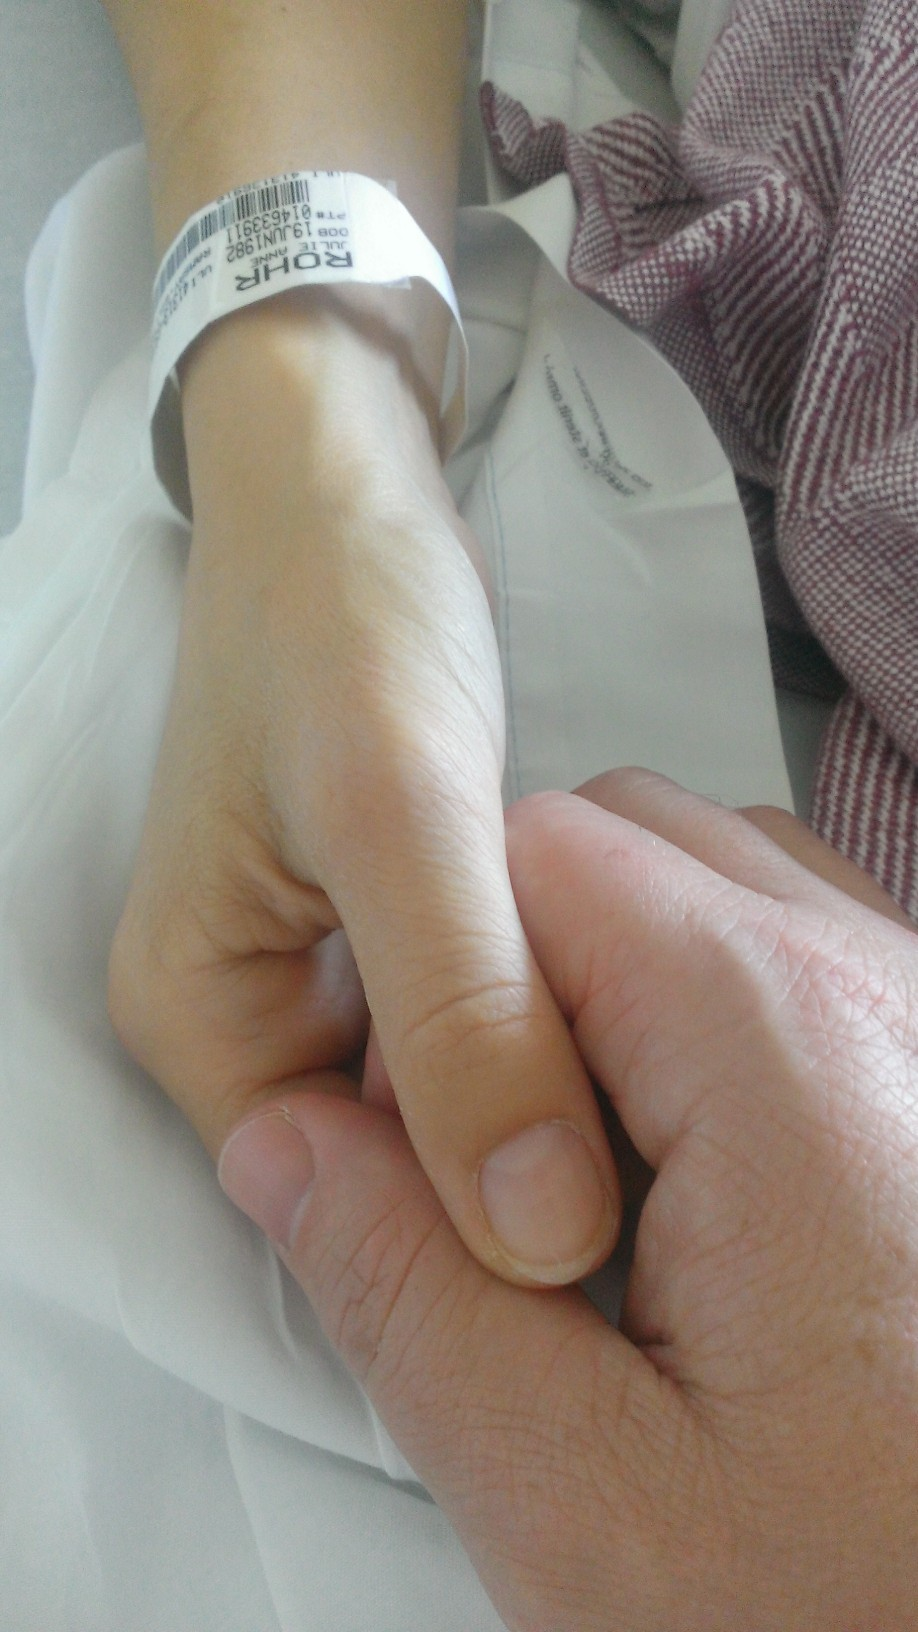 Julie Rohr holds her husband David's hand while in hospital. (David Schoor)